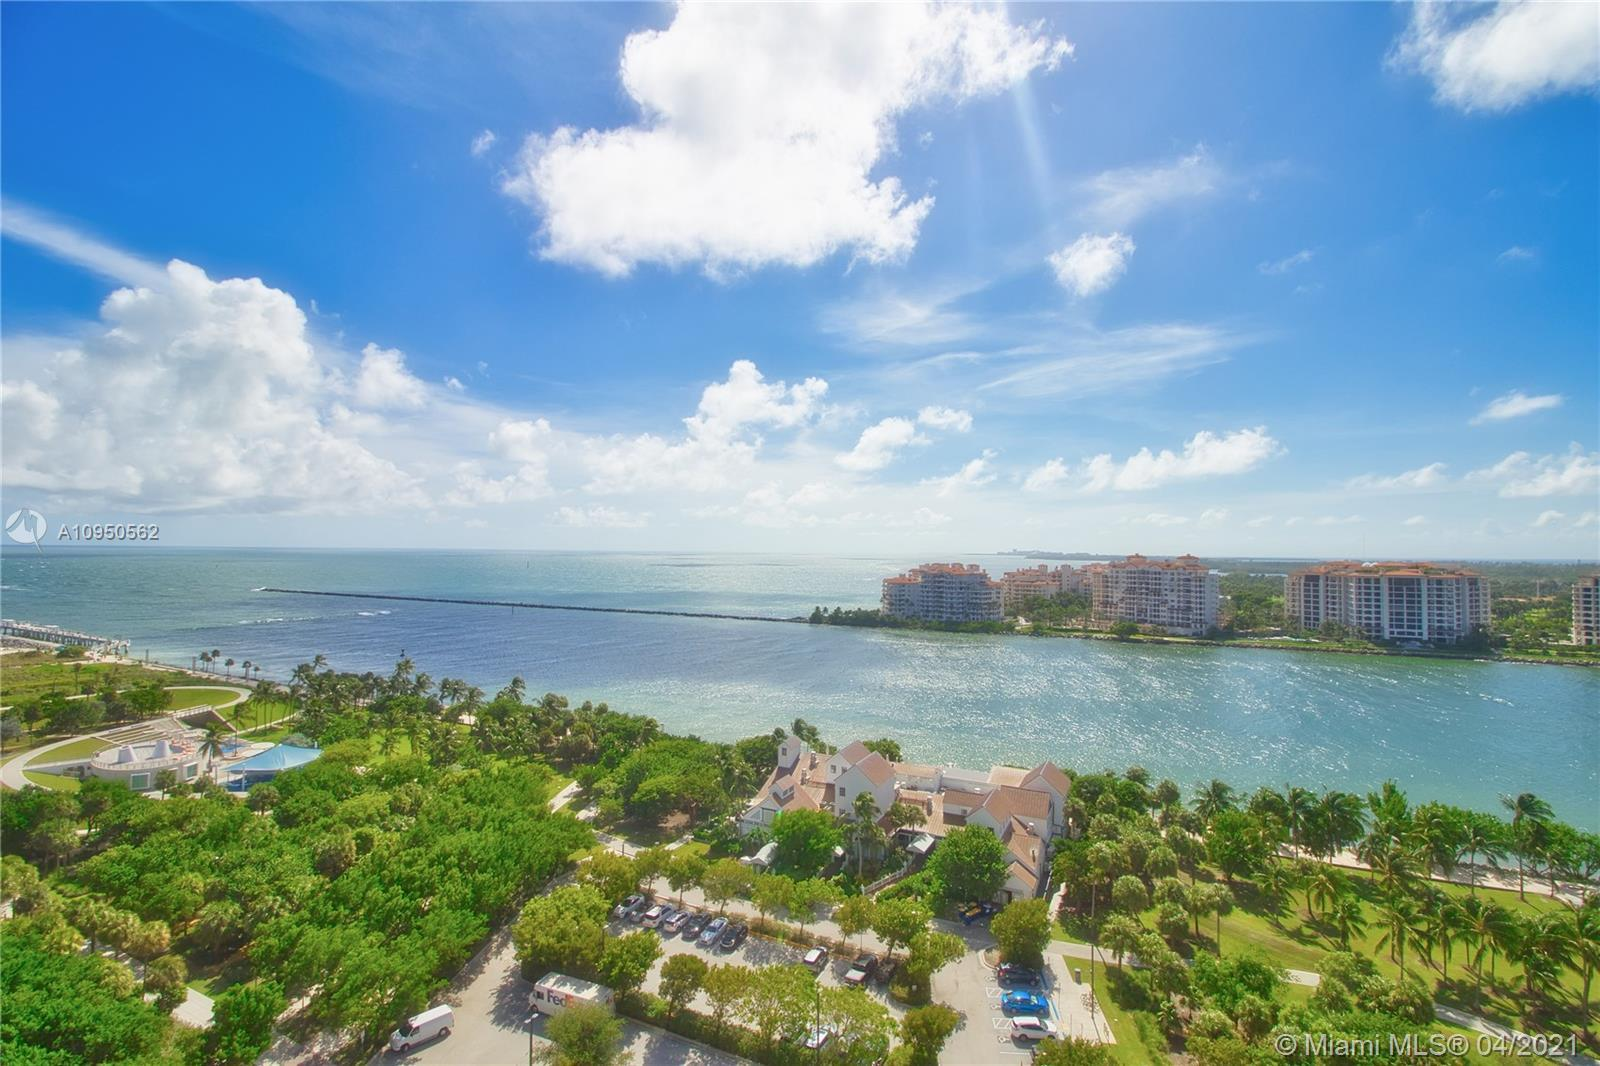 LEAST EXPENSIVE 3 BEDROOM WITH DIRECT OCEAN VIEWS IN THE SOFI NEIGHBORHOOD. S.E. corner unit with di